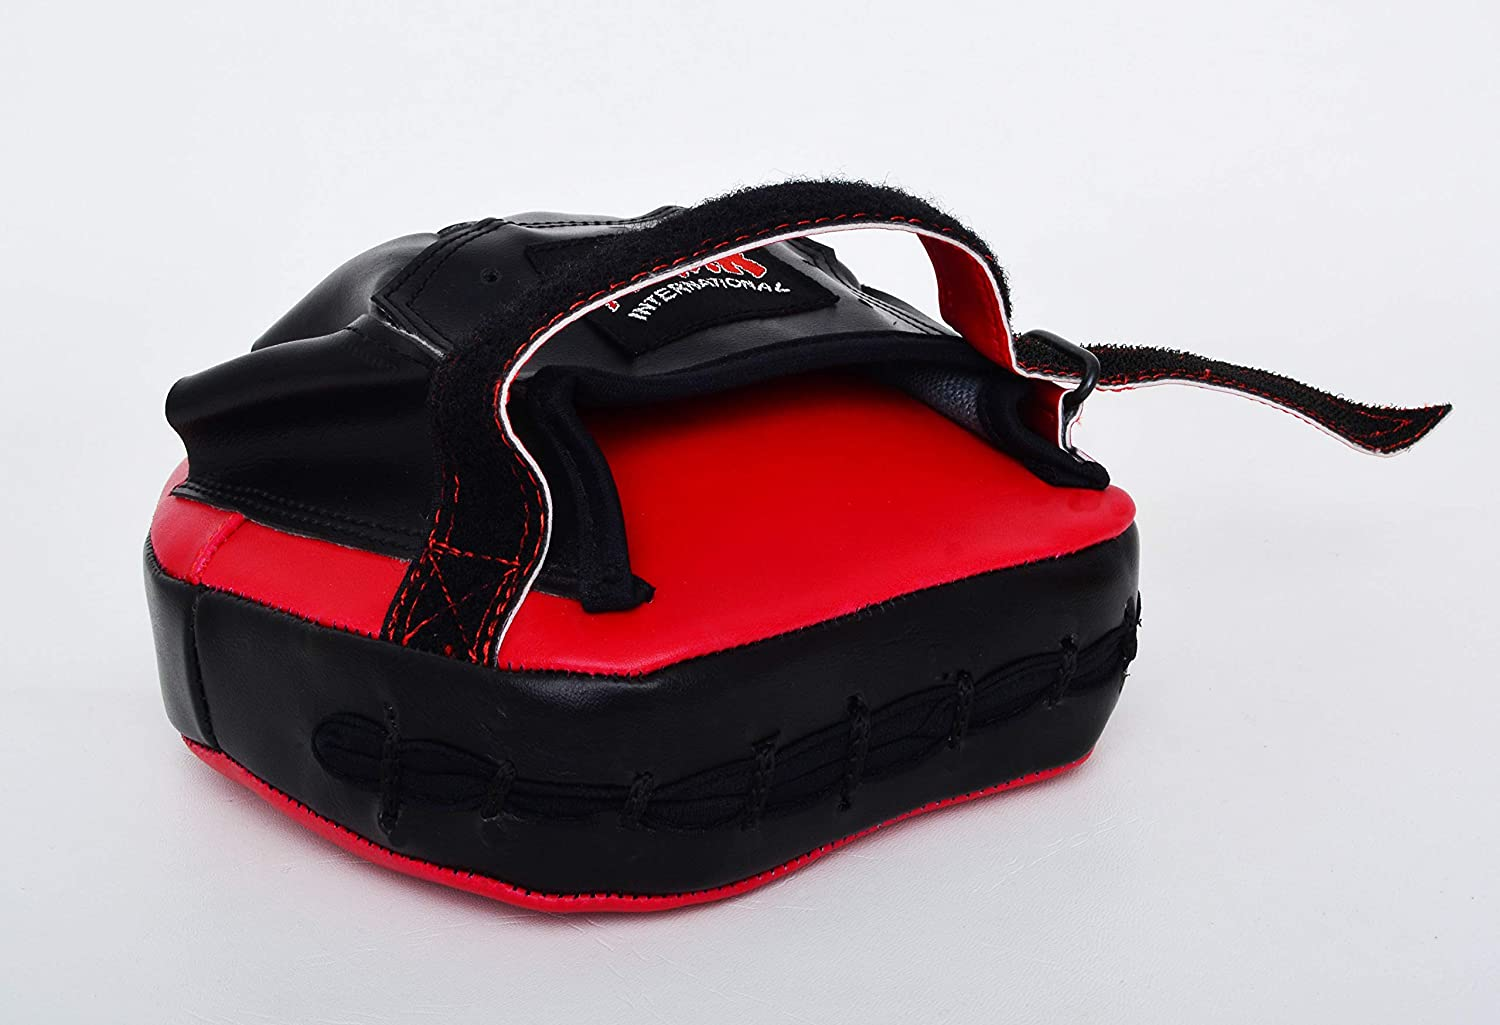 MAR International Red /& Black Small Pro Curved Focus Mitts